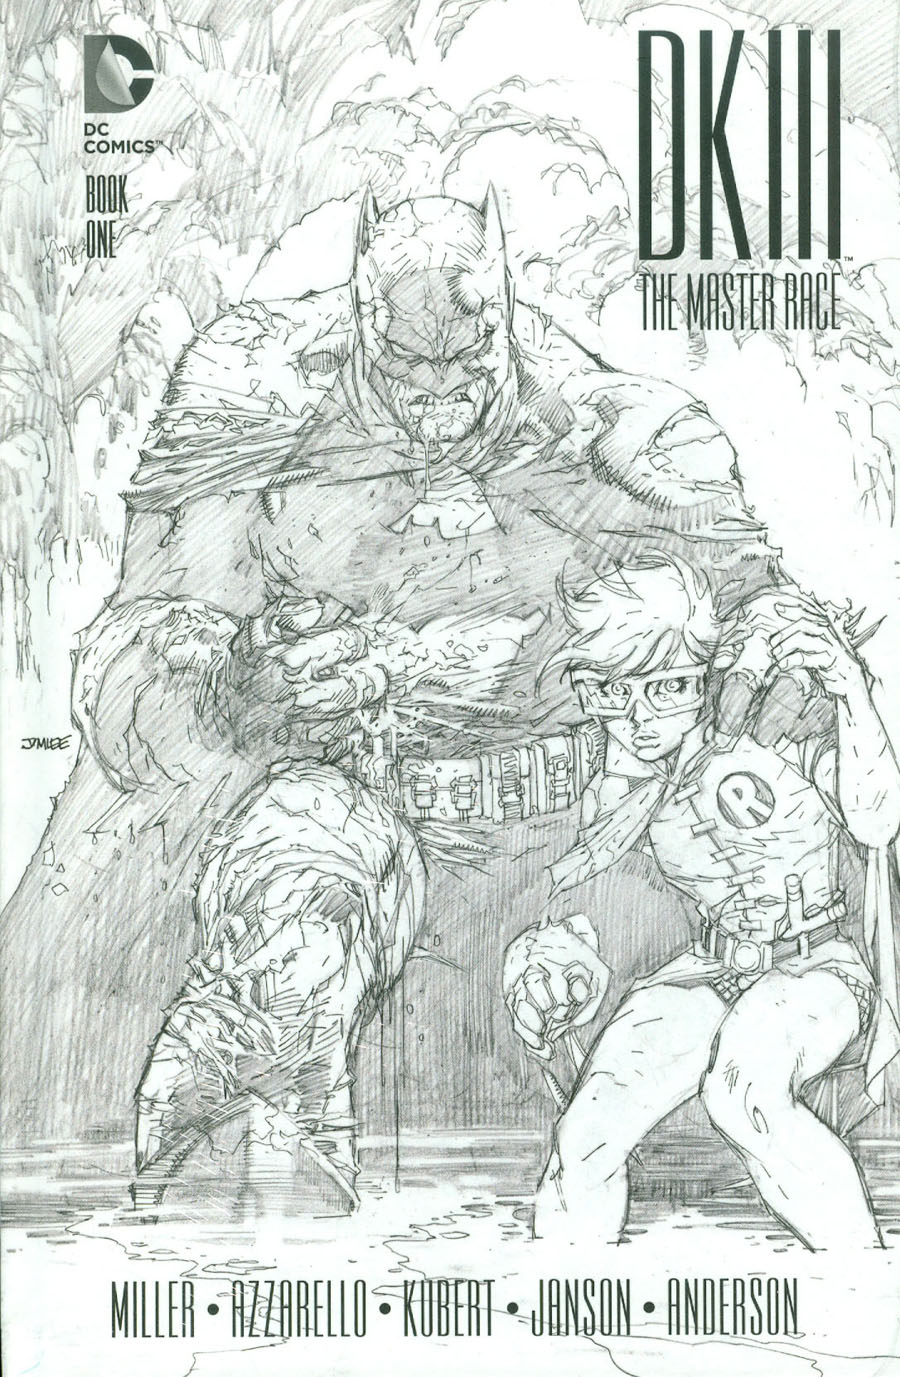 Dark Knight III The Master Race #1 Cover L Collectors Edition HC